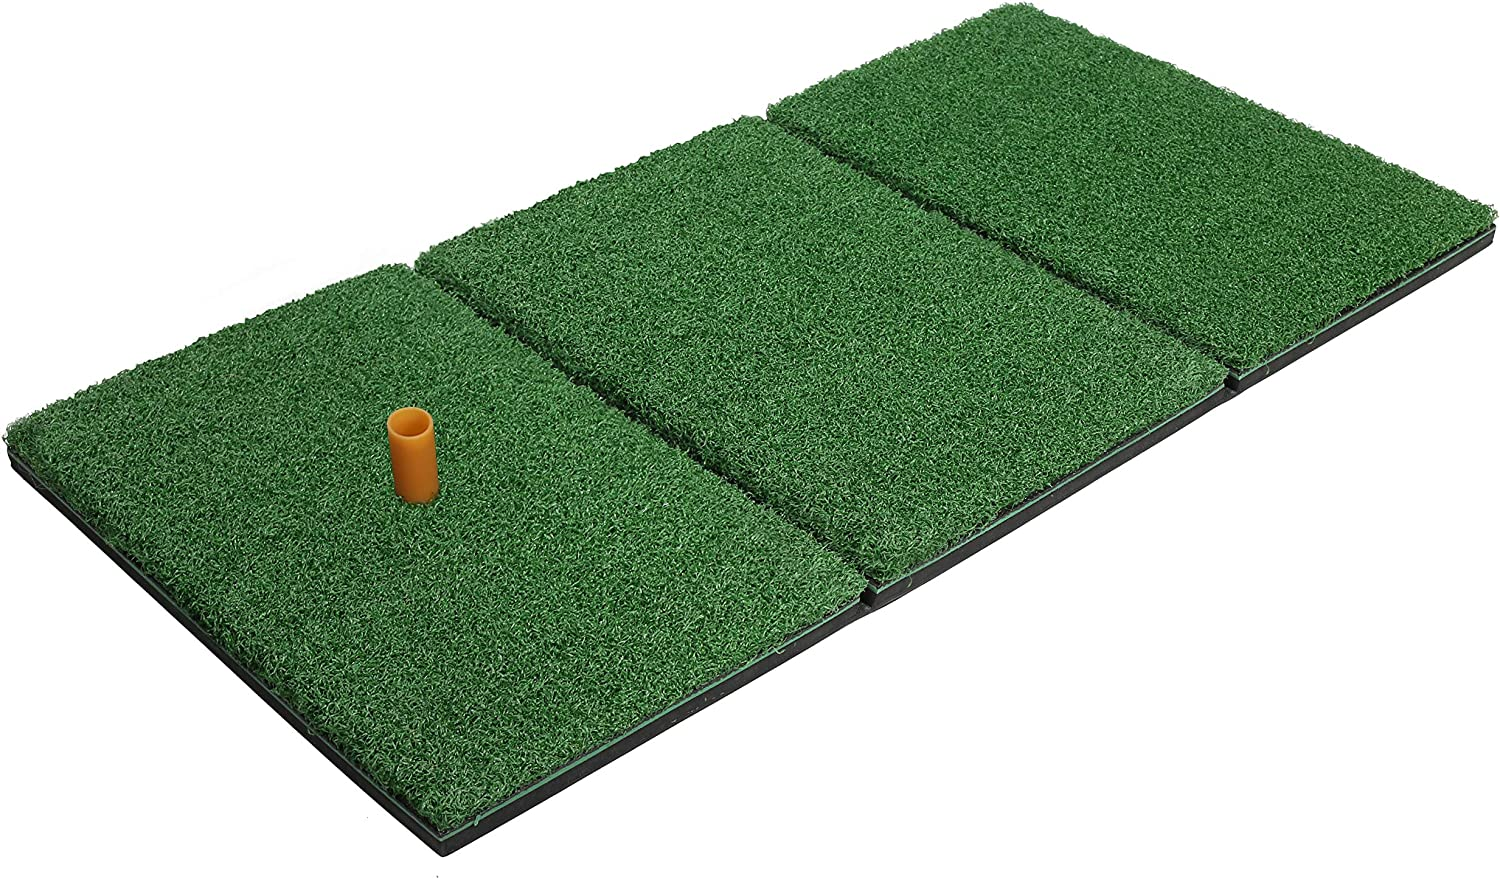 Milliard Golf Turf Grass Mat Foldable Practice Hitting Mat, Indoor and Outdoor Portable for Chipping, Putting Golf Practice and Training with Rubber Tee and Holder - 24x12 inches.